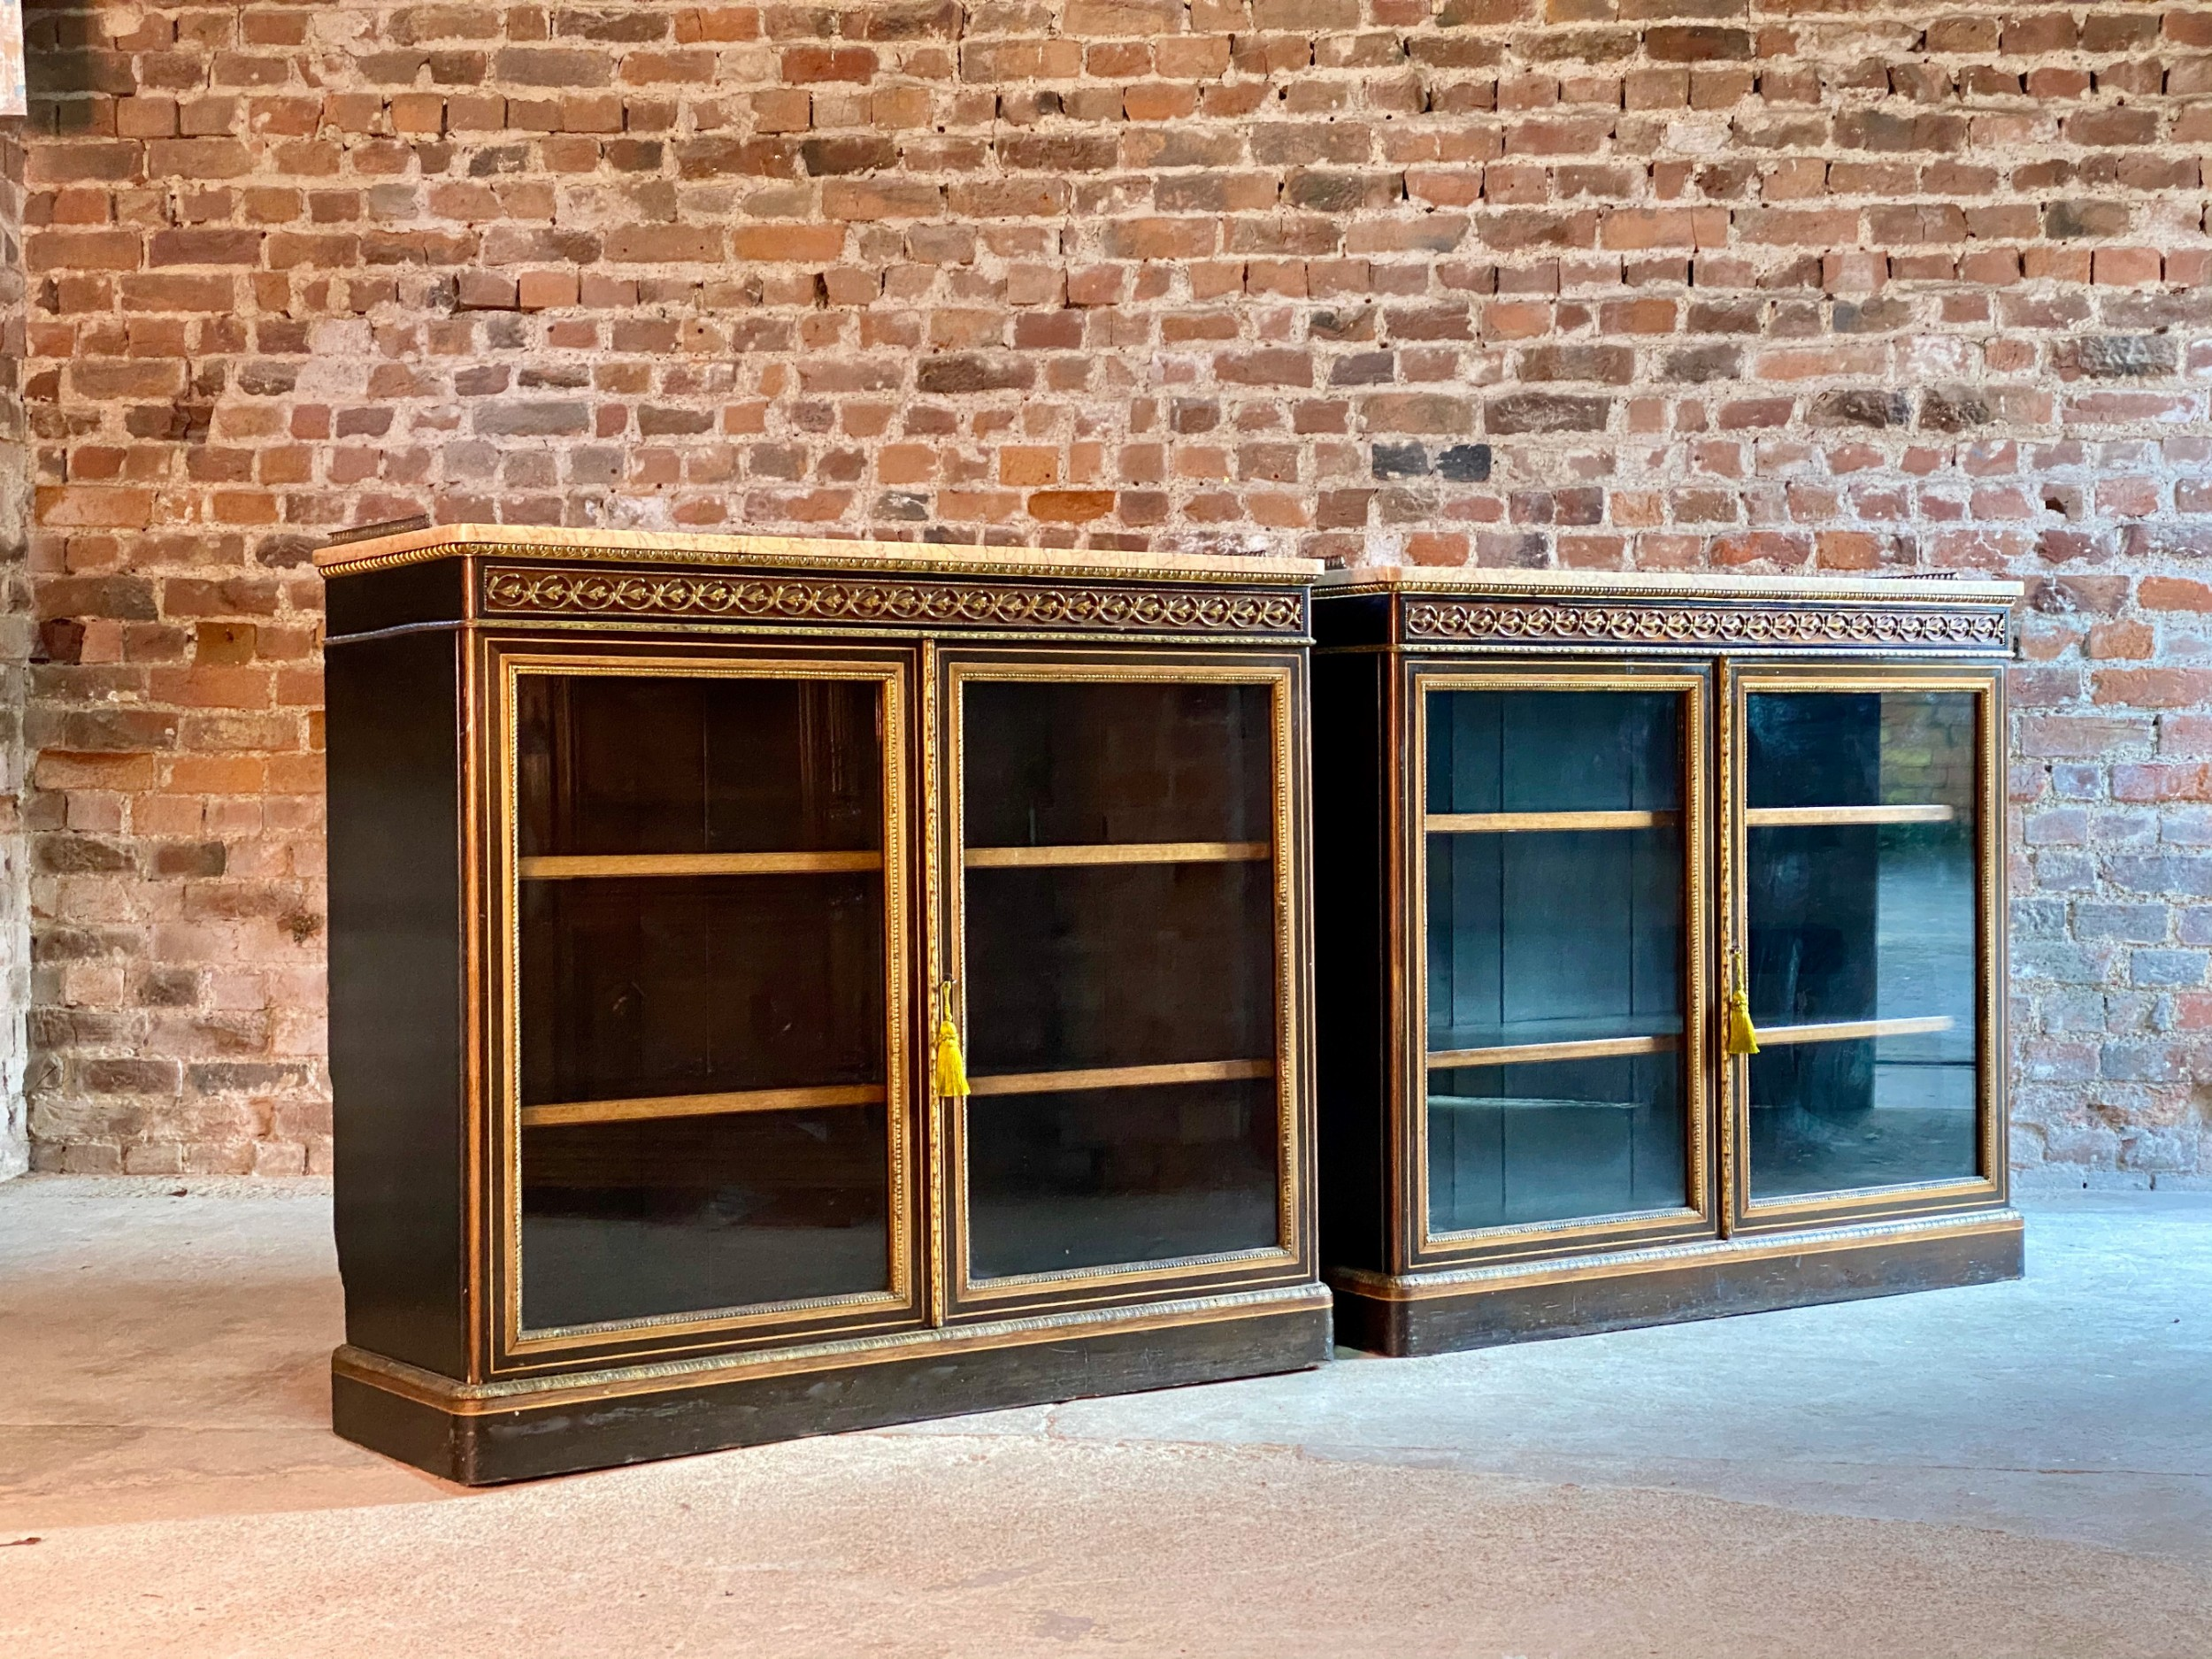 james lamb of manchester pair of ebonised walnut gilt metal mounted pier cabinets circa 1850